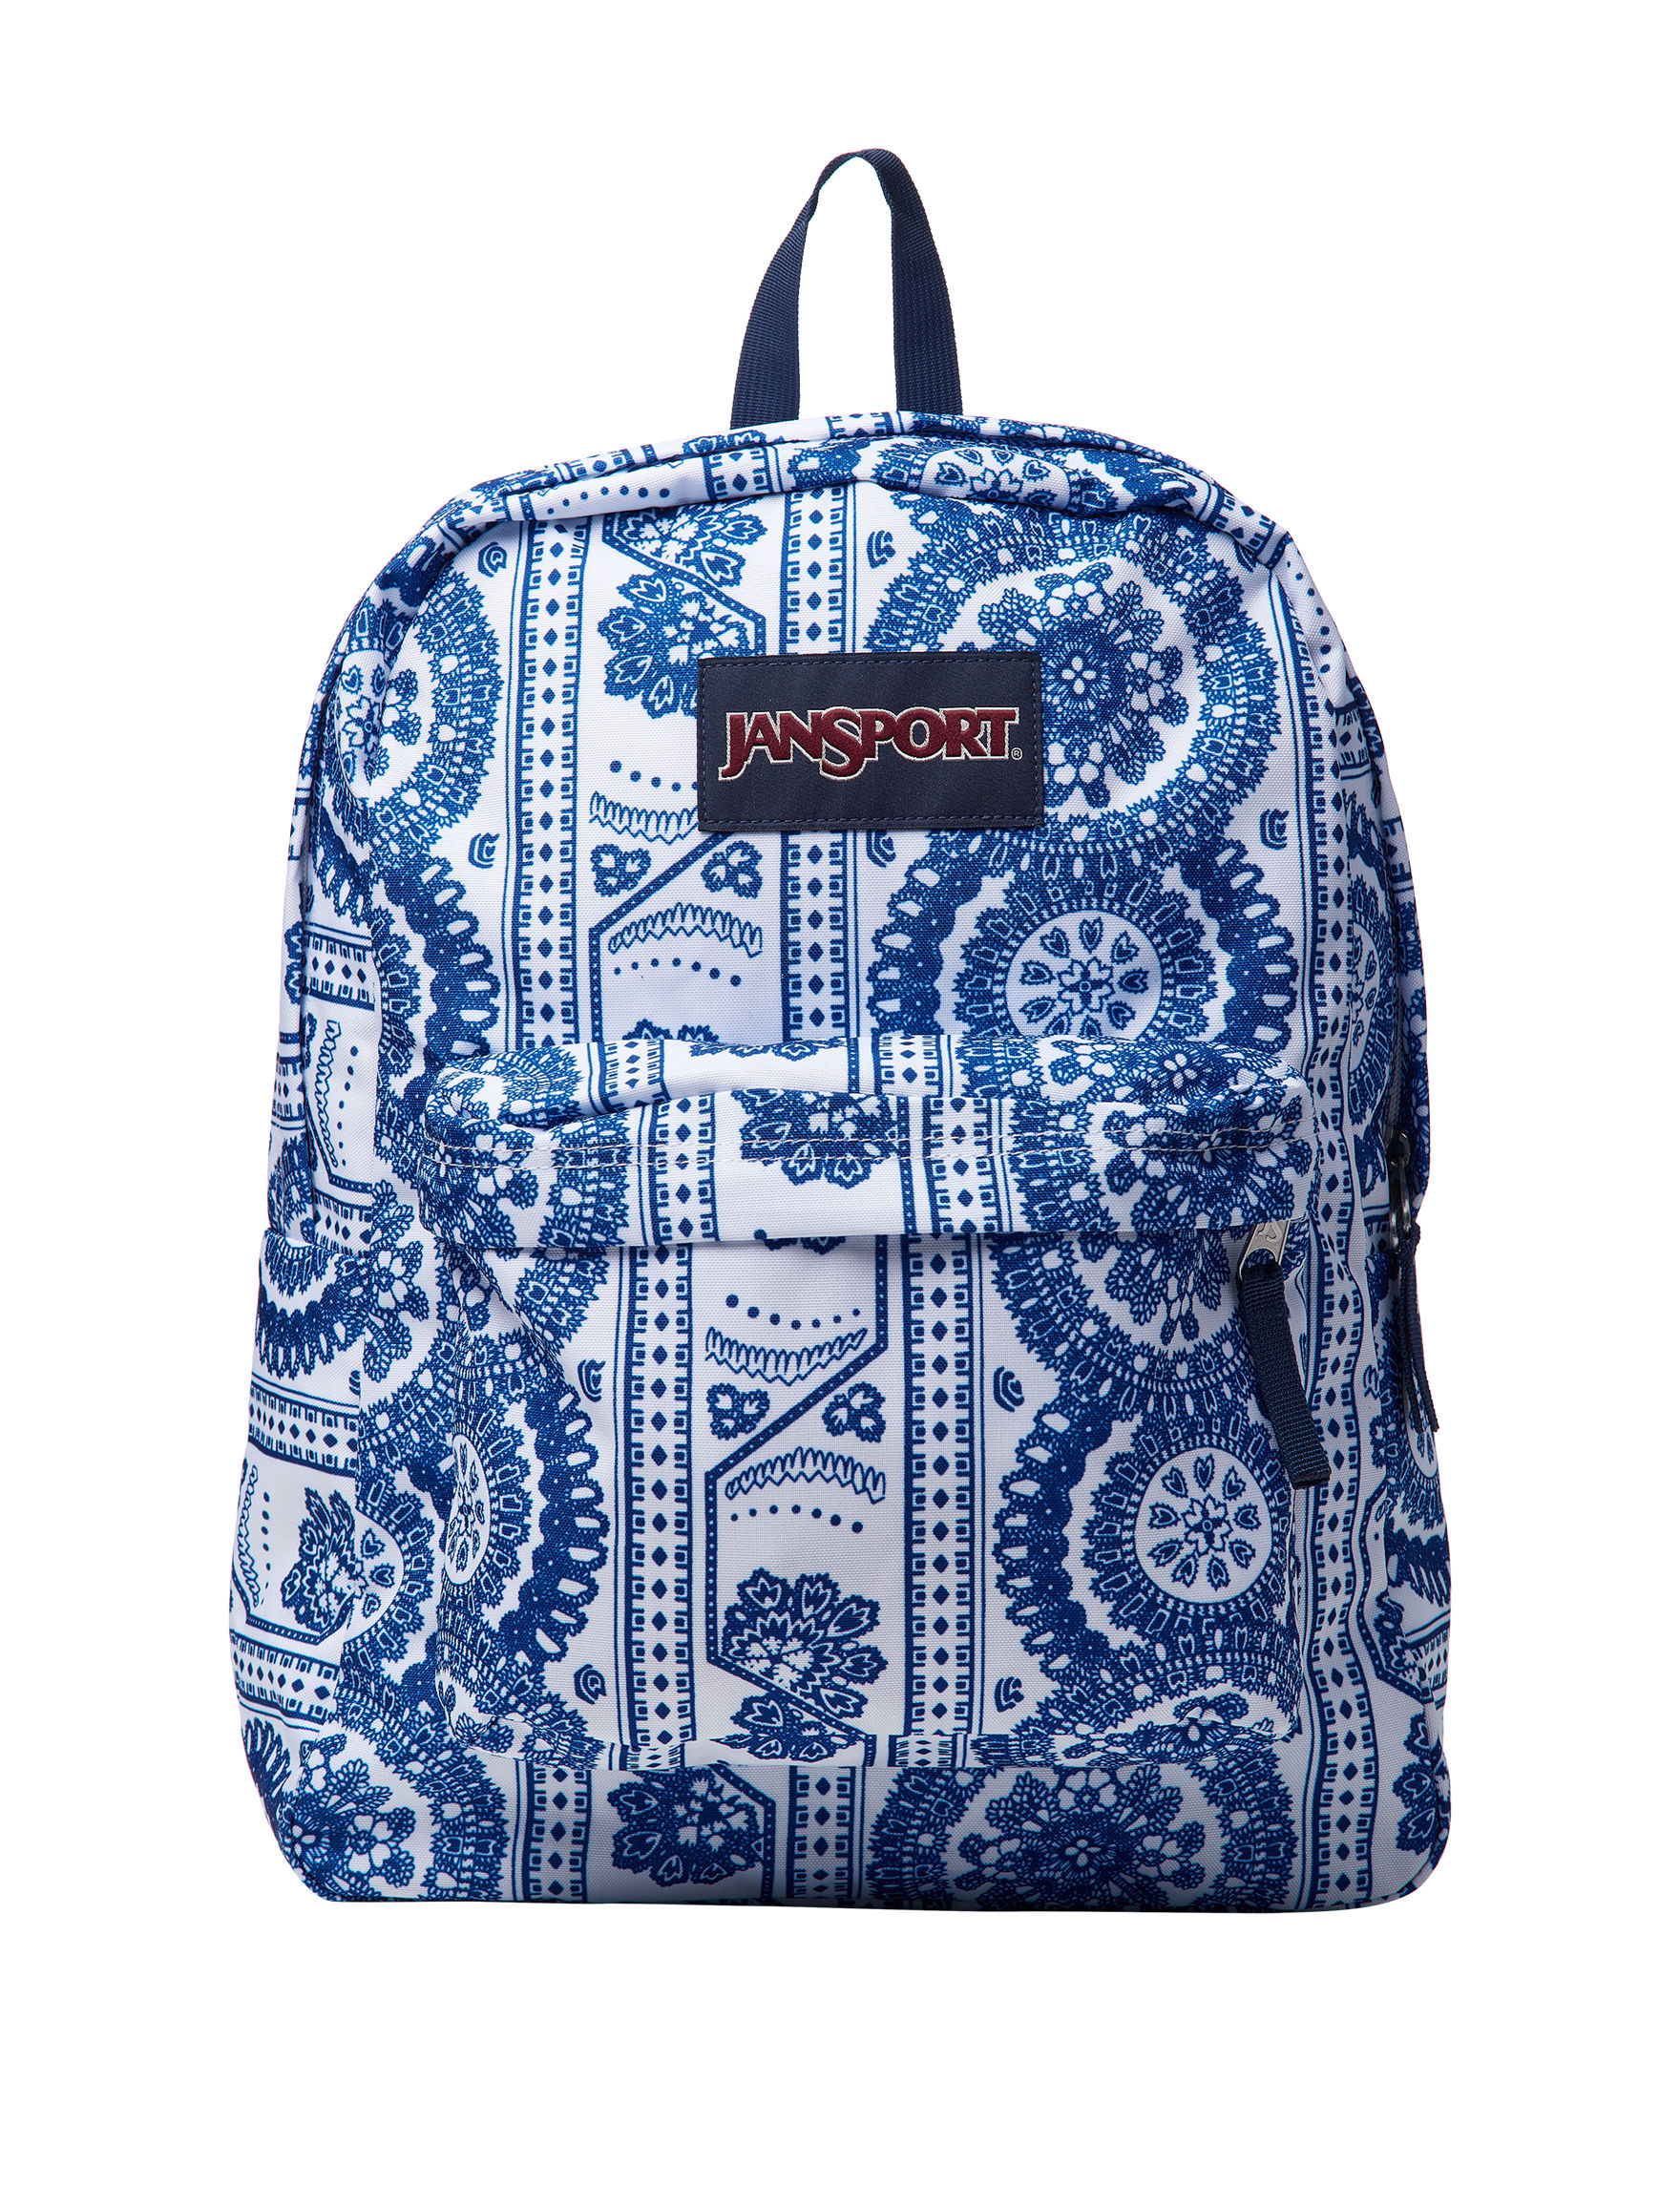 Jansport White / Blue Bookbags & Backpacks